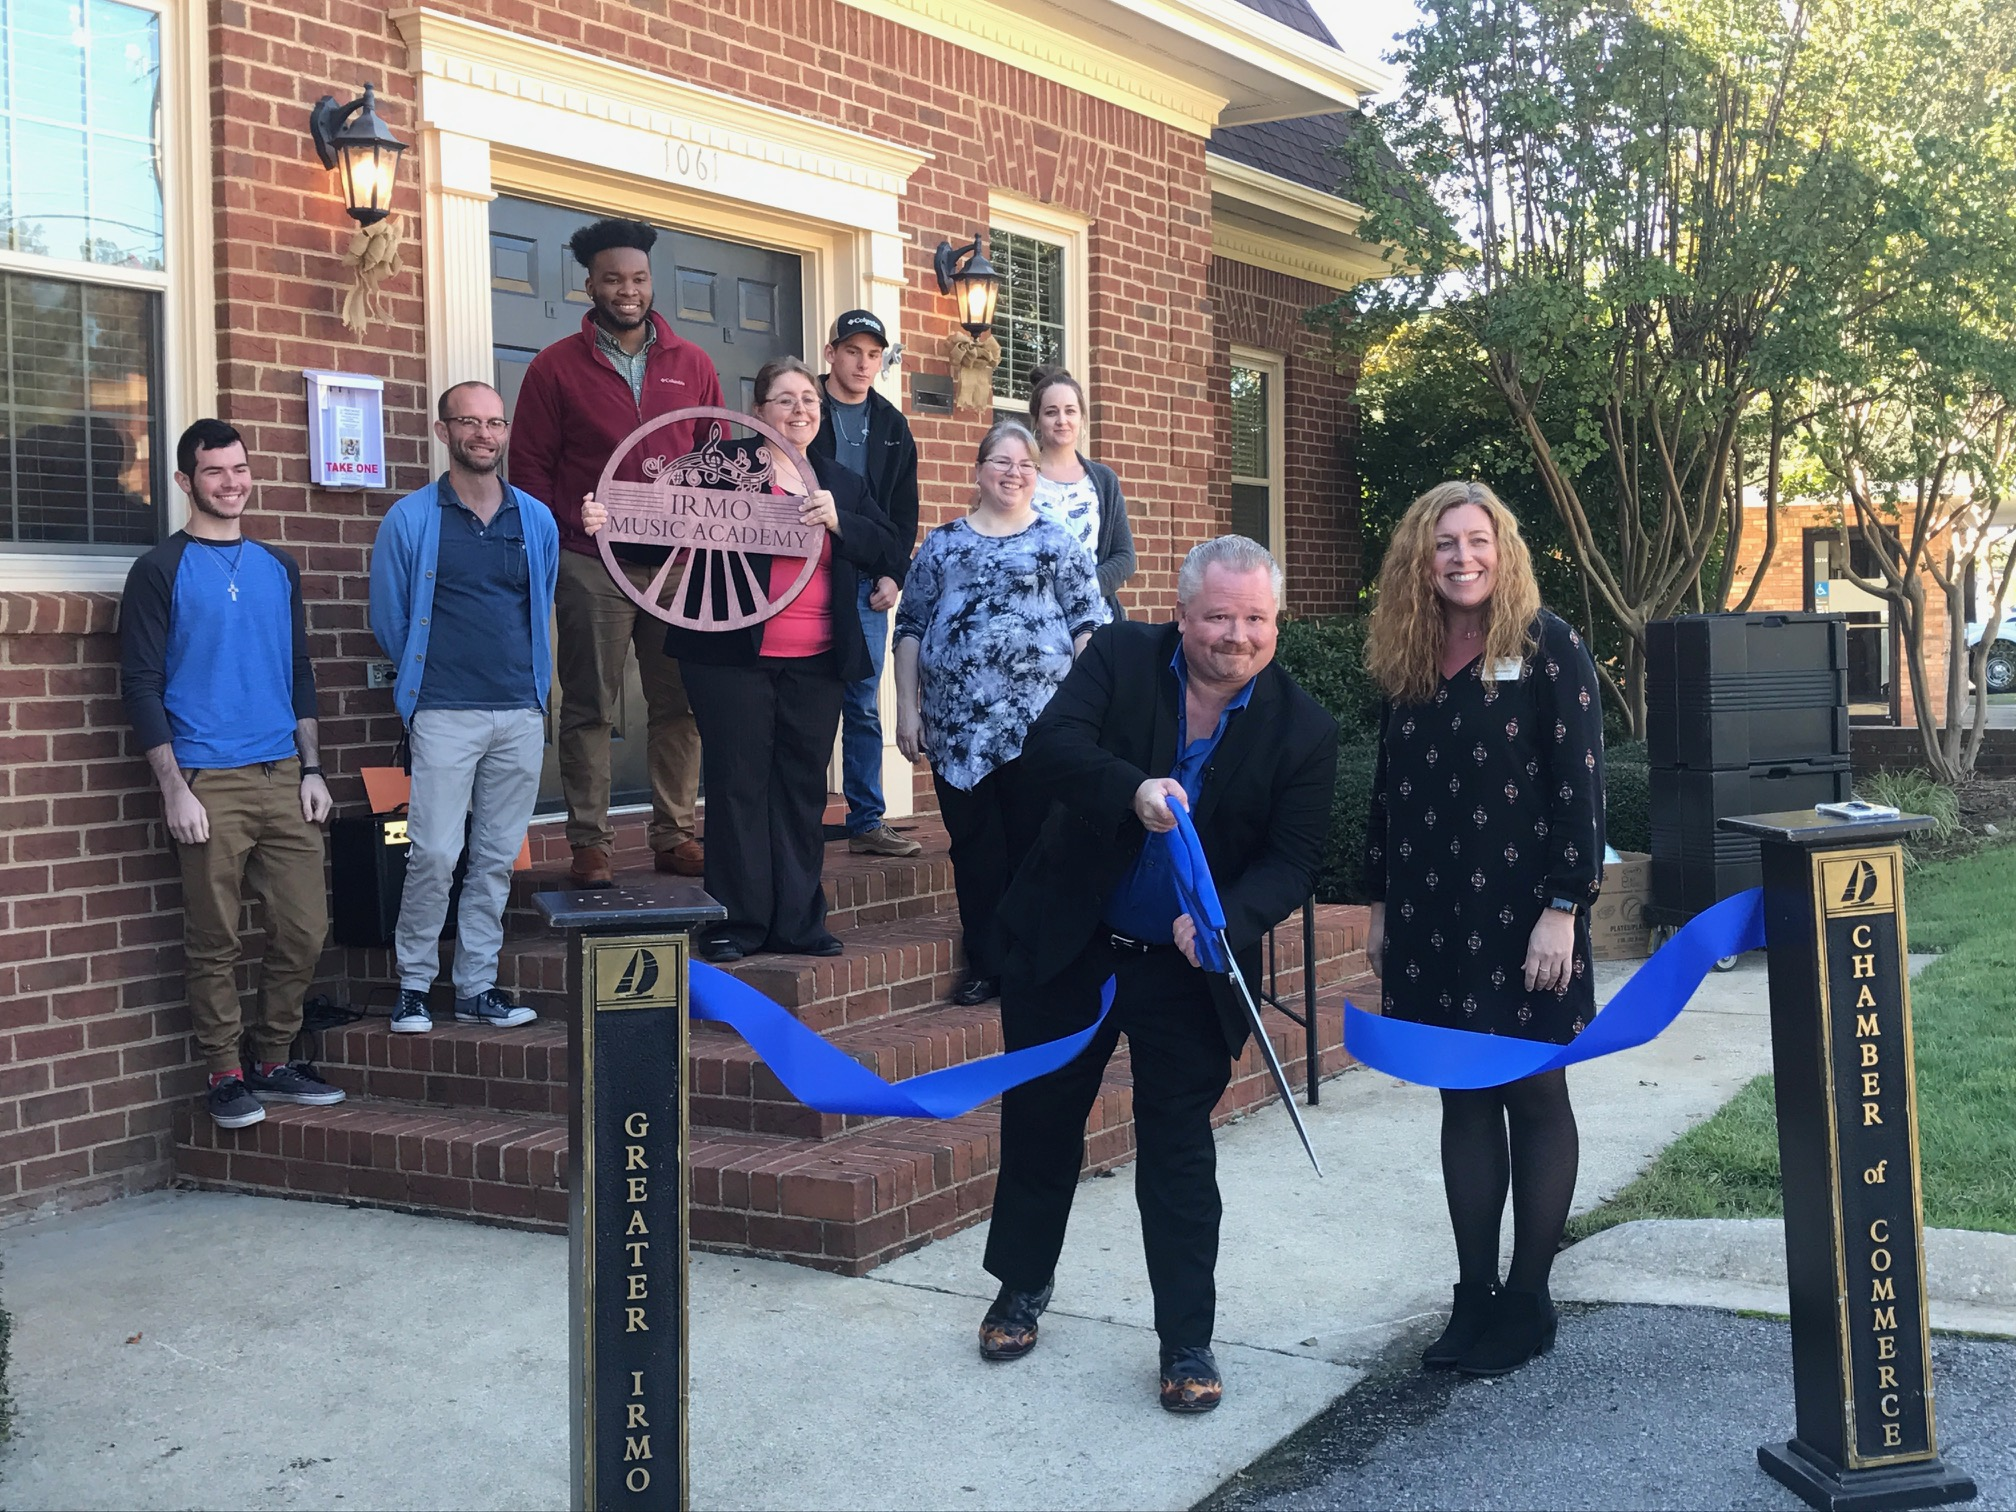 The Irmo Music Academy had it's grand opening and we celebrated with a barbecue luncheon from Palmetto Pig, Italian ice and Fair Food from Brain Freeze –we even had face painting and balloon animals from Balloon King and Queen!